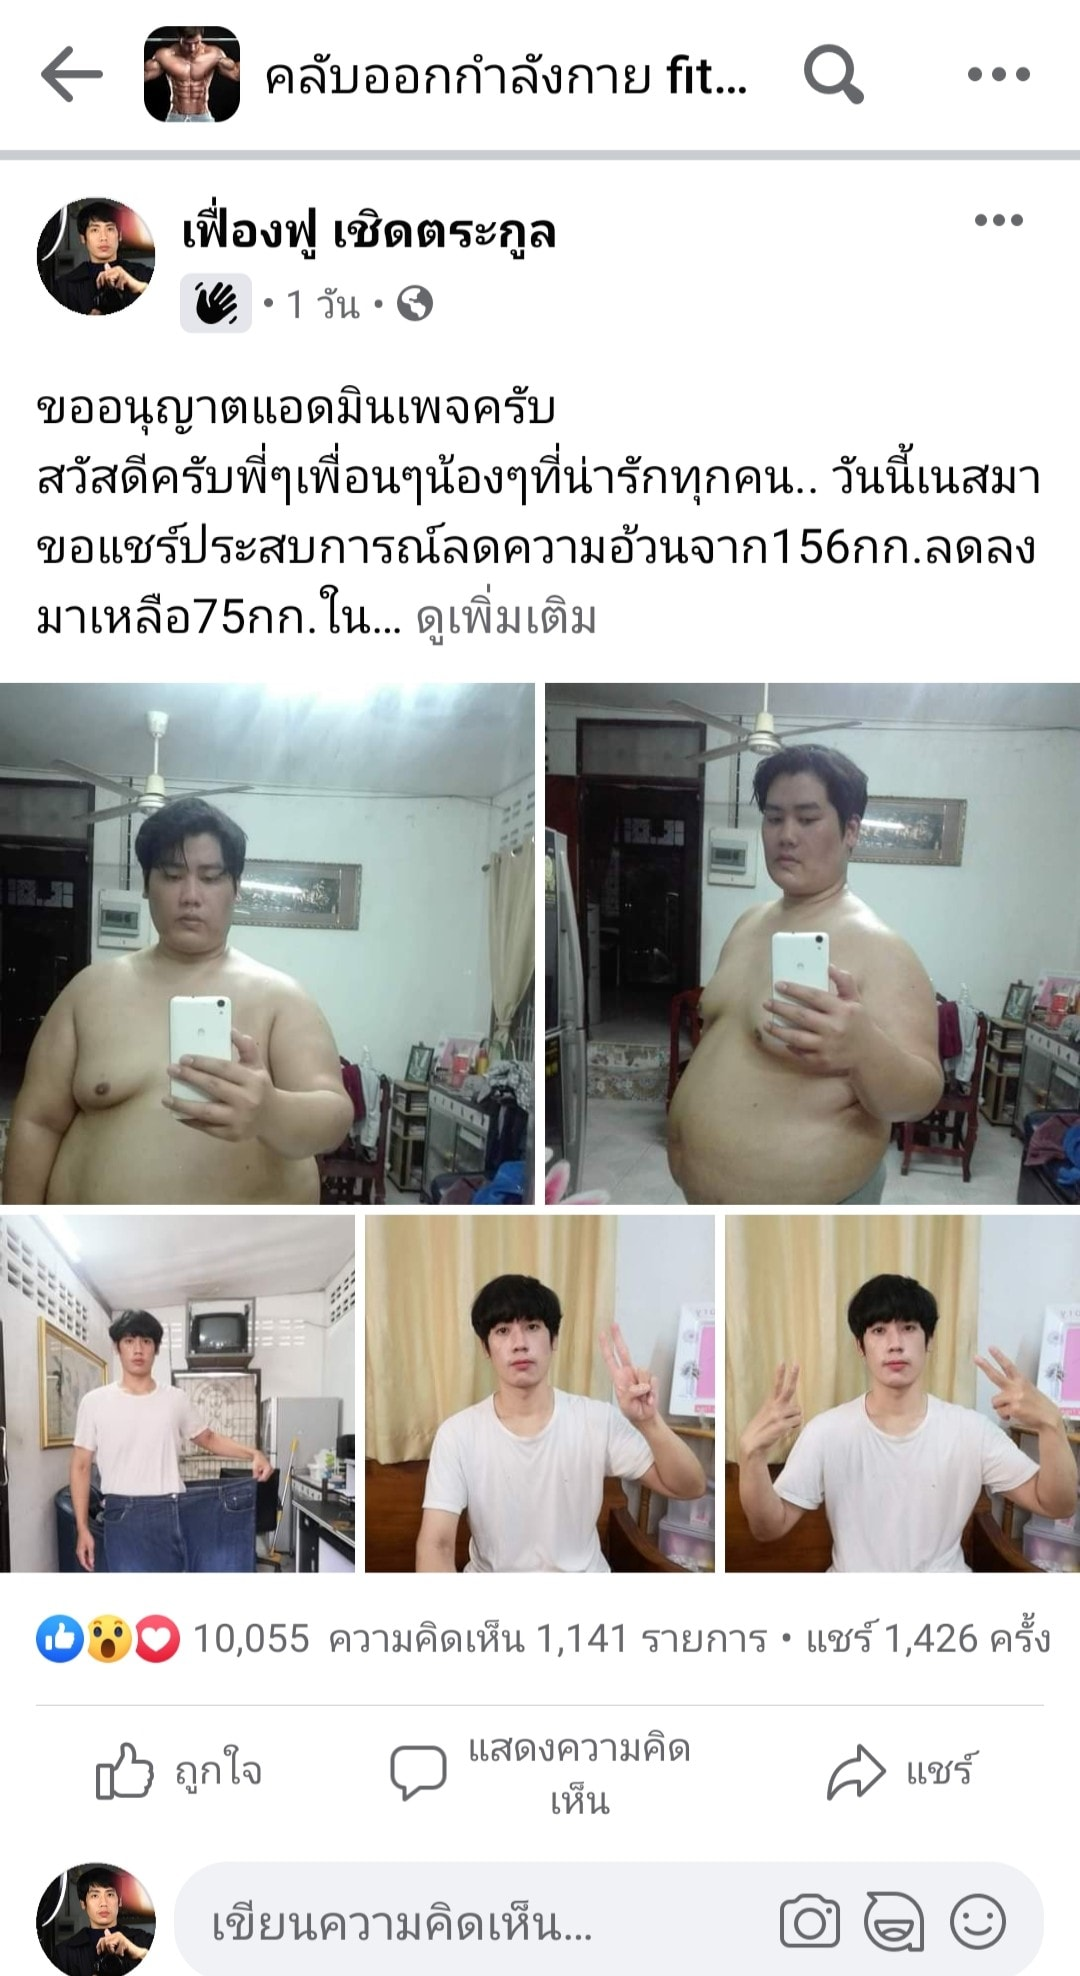 Thai Man Shows Weight Loss Journey On Facebook, Transforms Into A Hunk